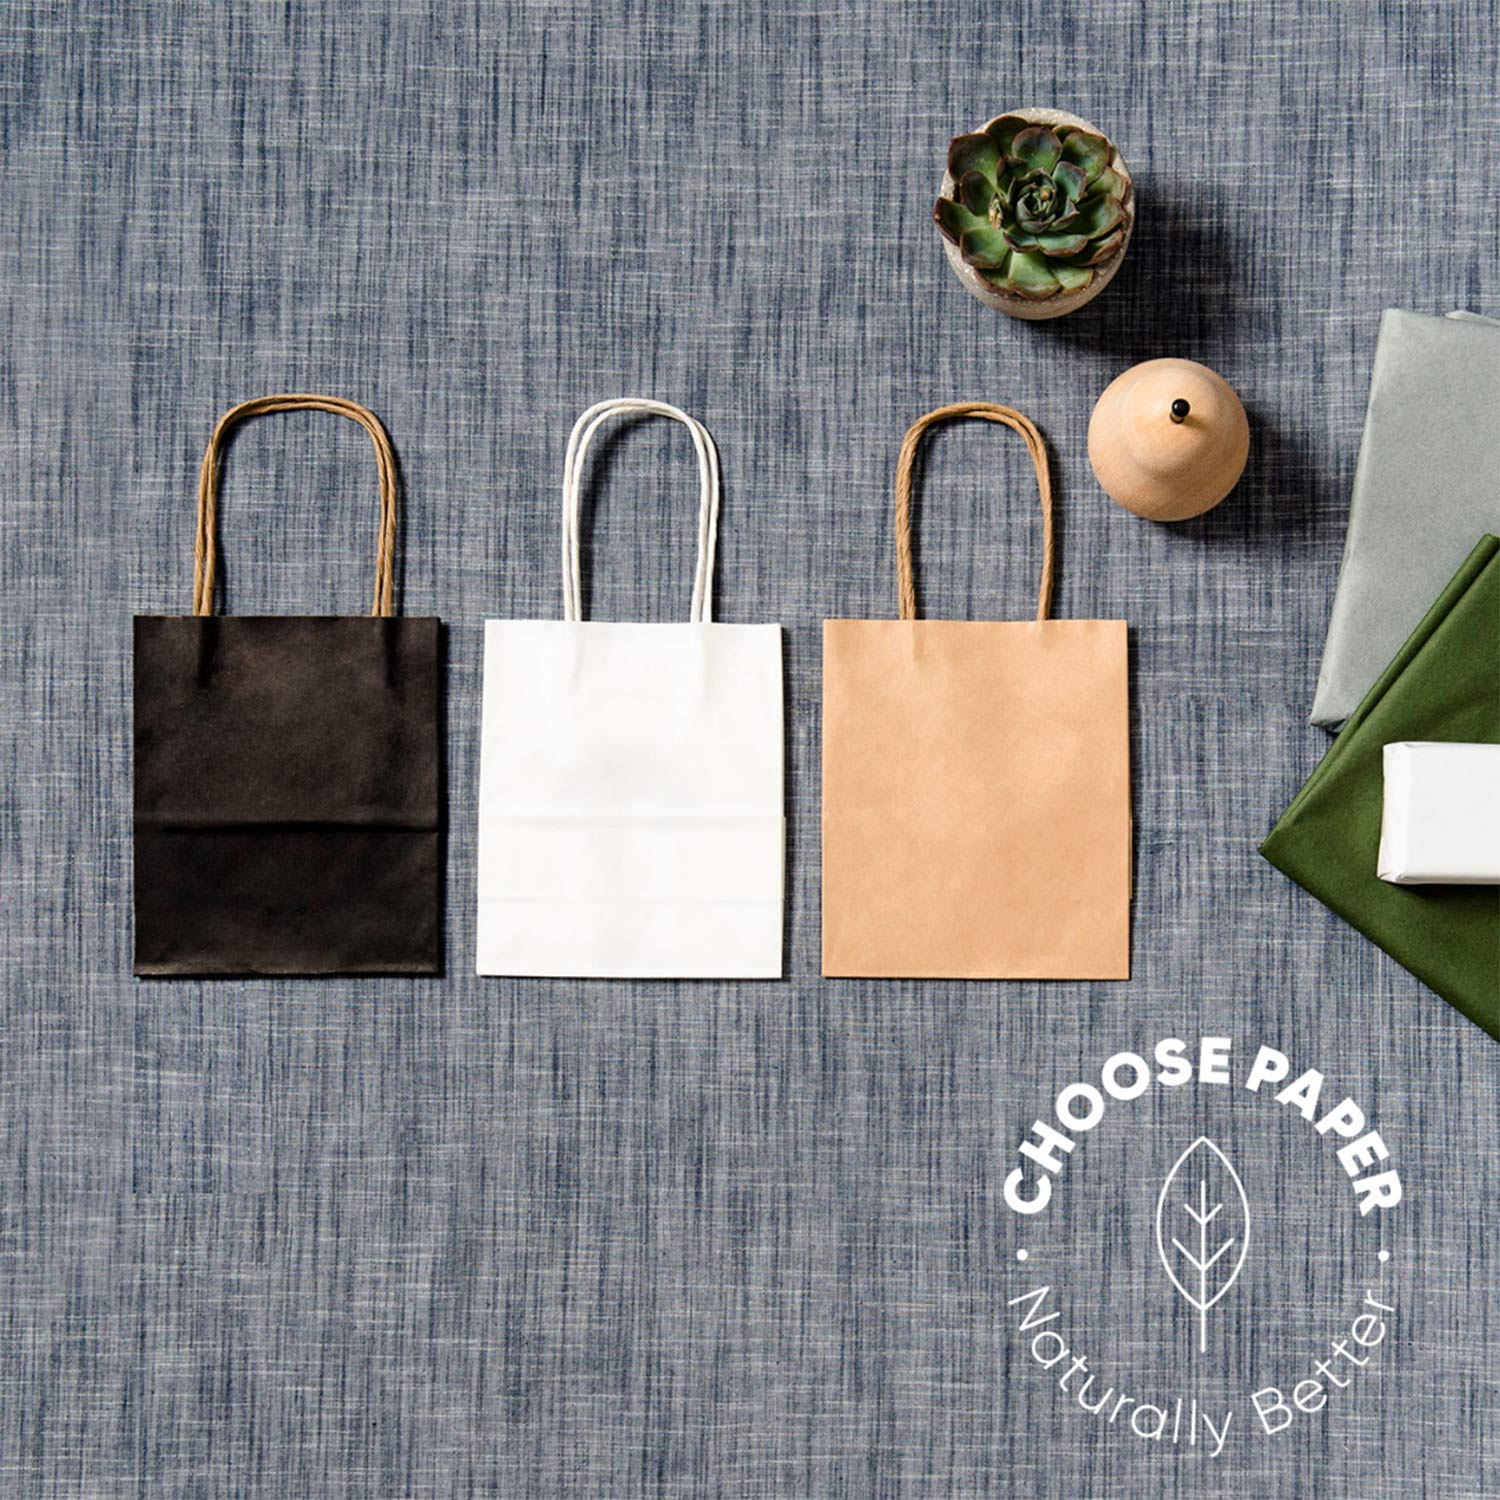 "Image of three paper carry bags with logo ""Choose paper. Naturally Better""."